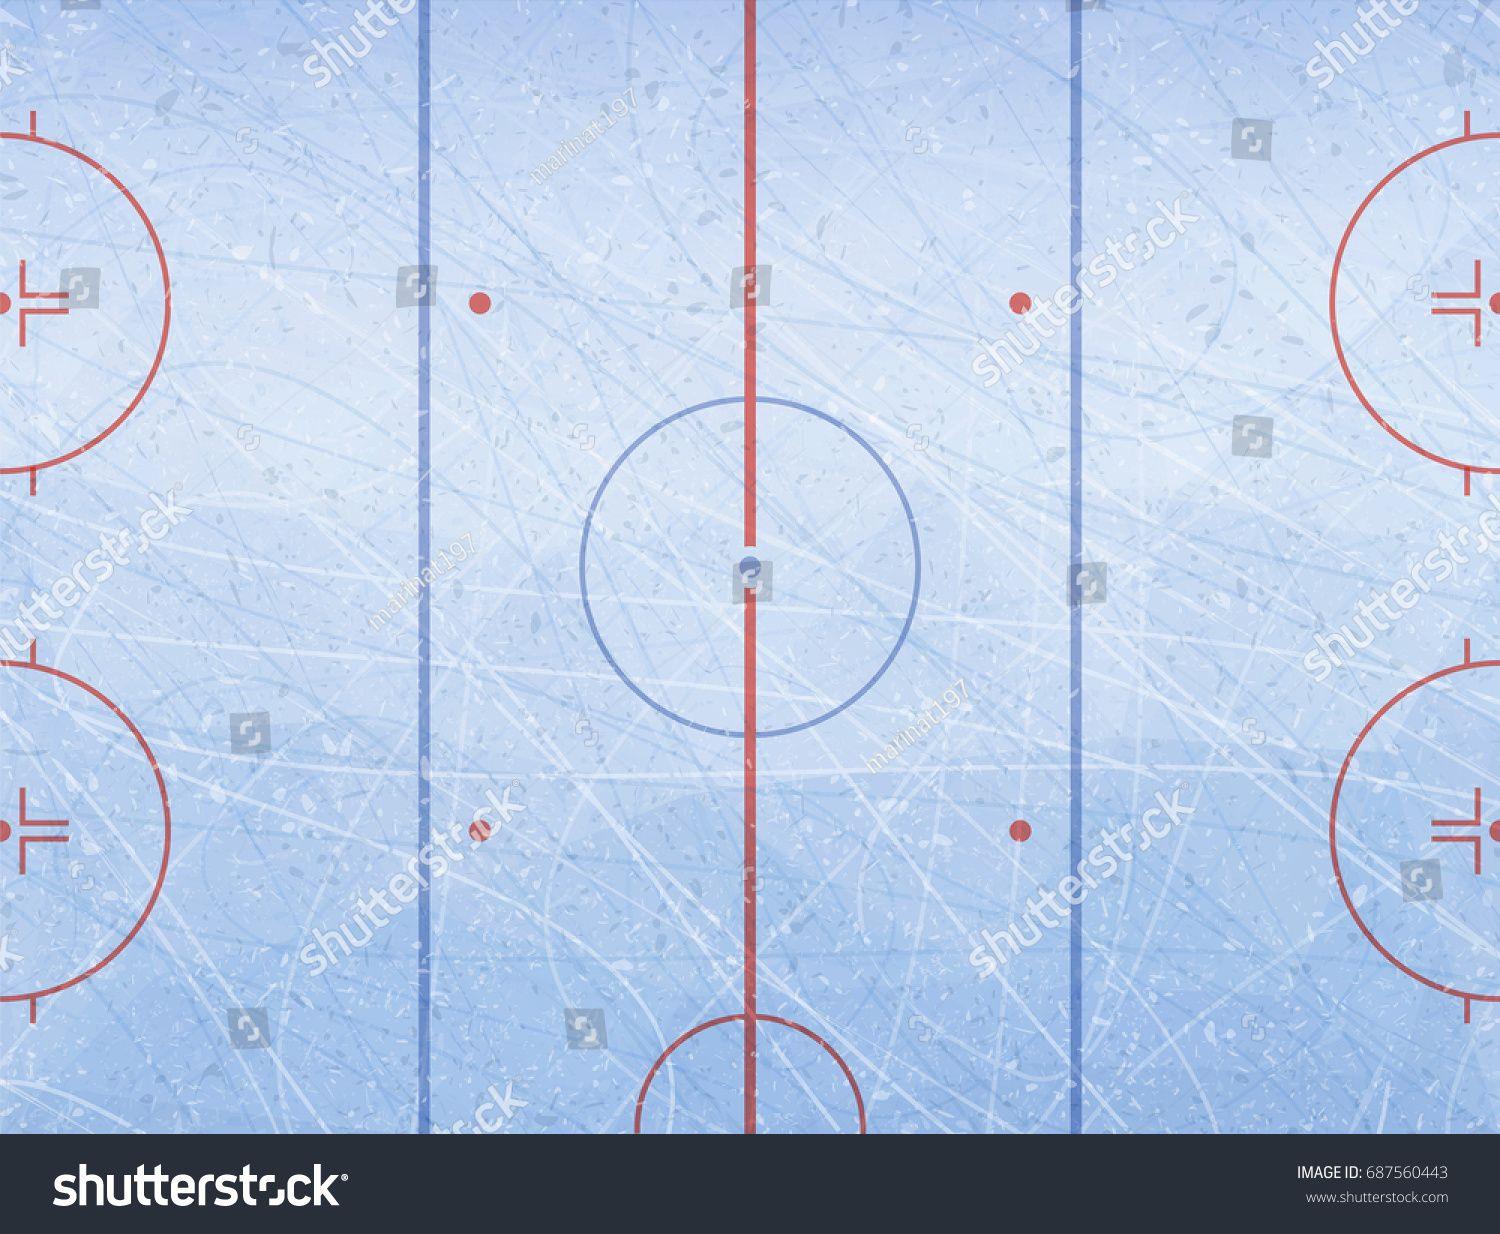 Vector Of Ice Hockey Rink Textures Blue Ice Ice Rink Vector Illustration Backg Marketing Business Card Professional Business Cards Marketing Ice Hockey Rink